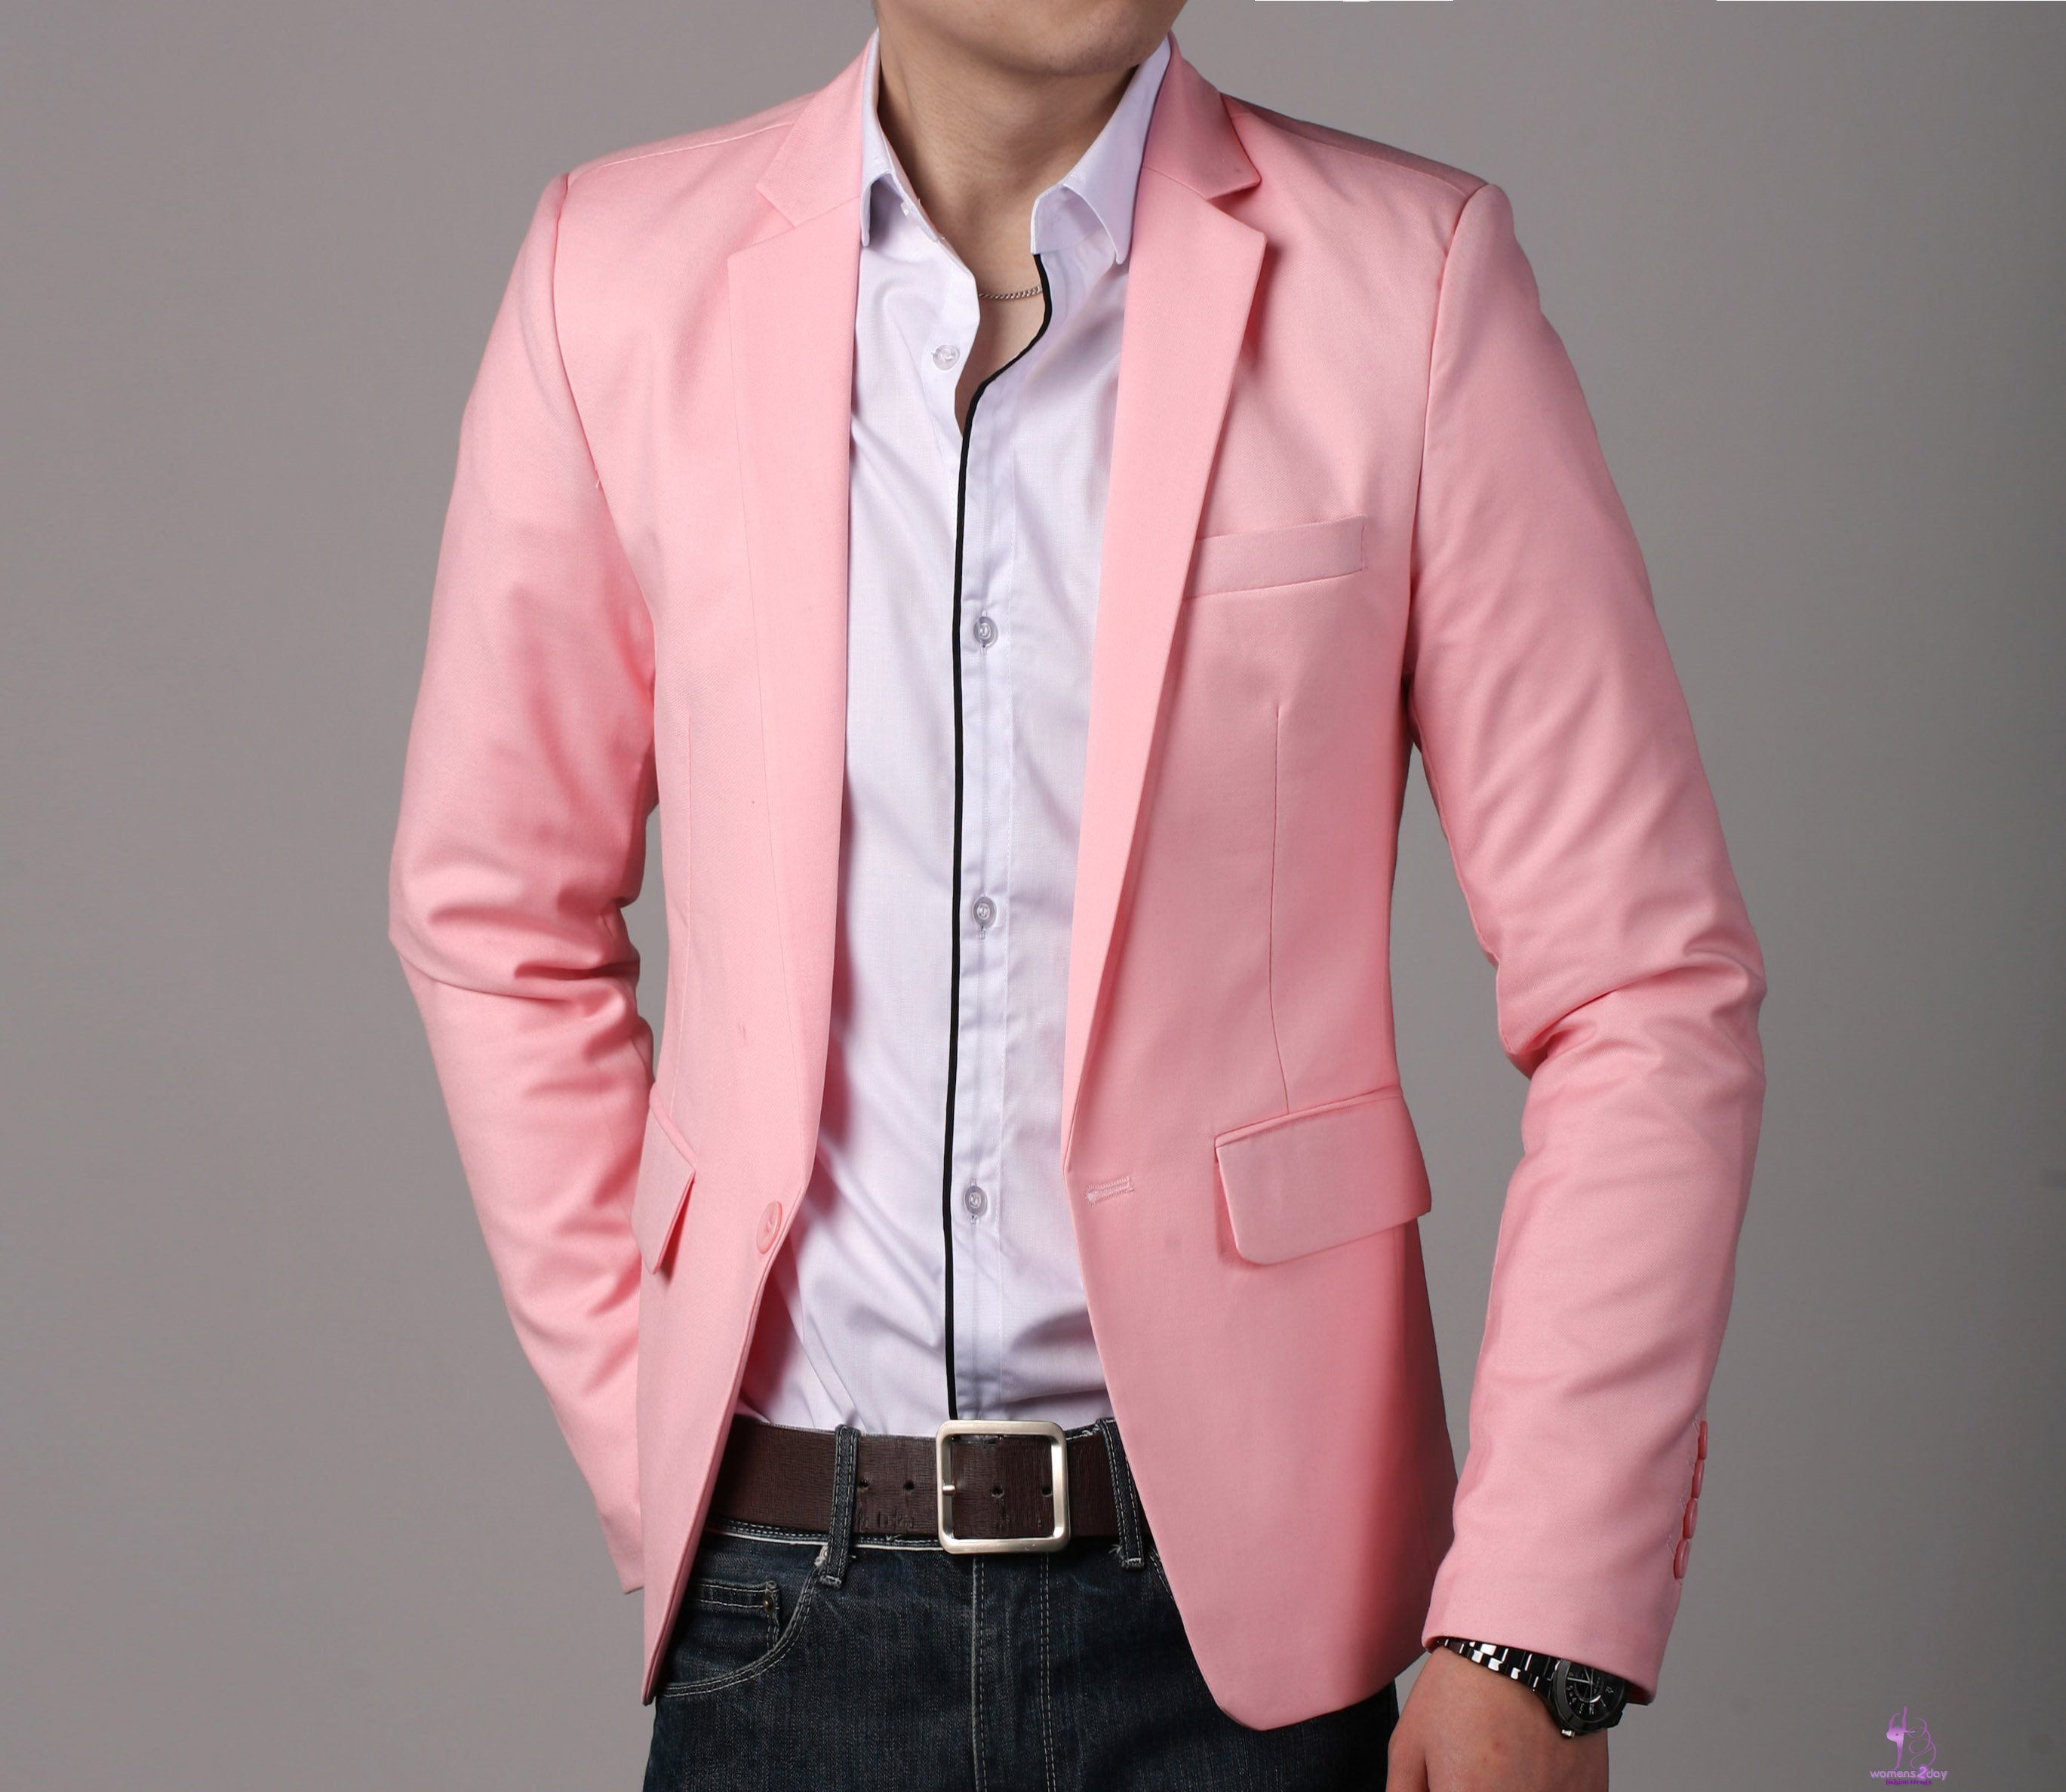 Natural skinny men casual blazer 2013 - attractive blazer 2013 ...